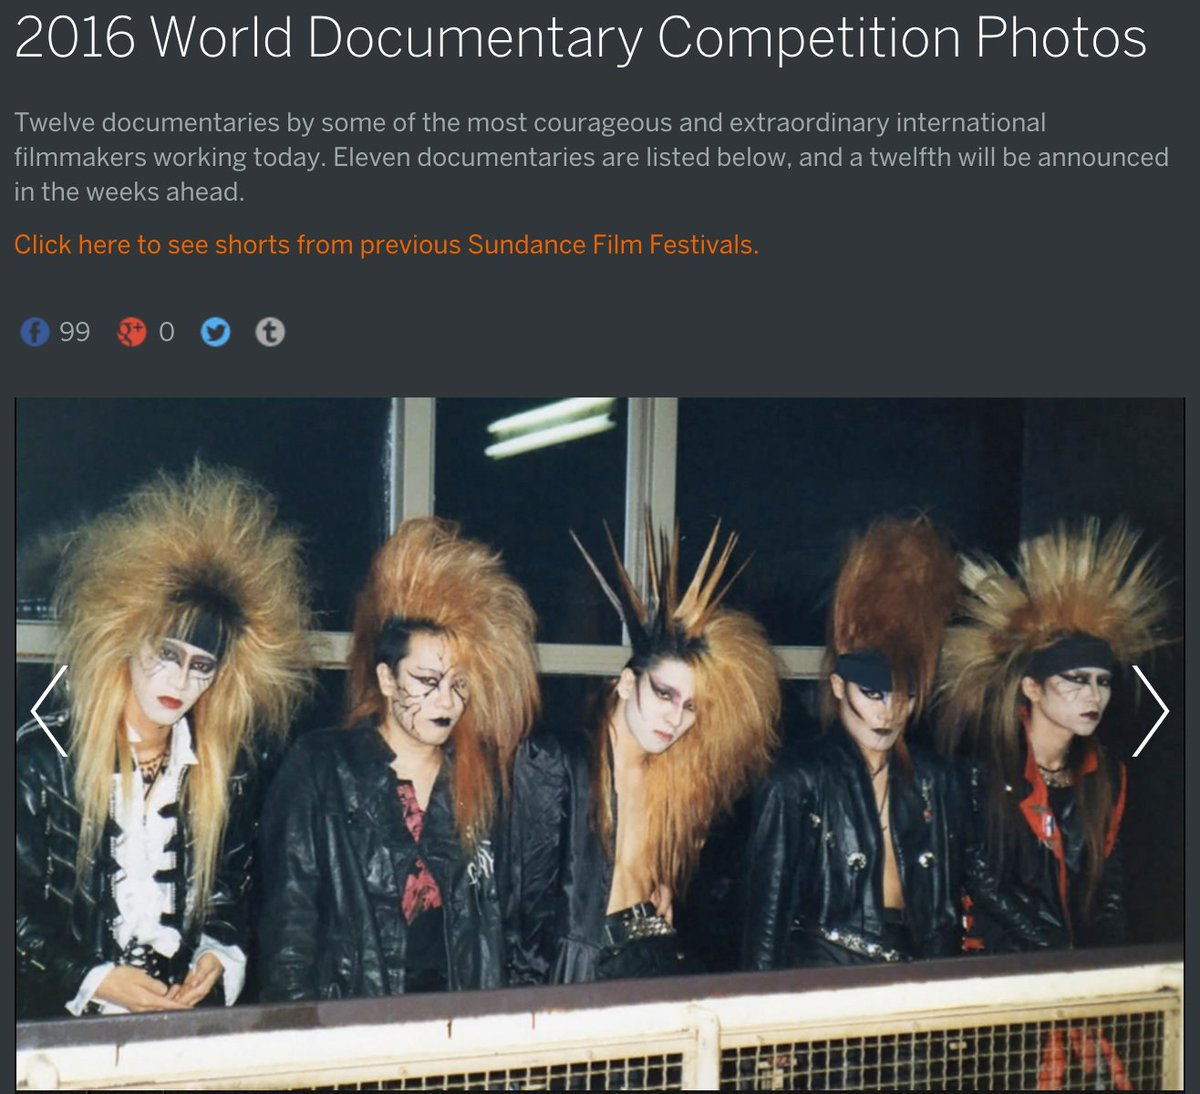 #Sundance 2016 World #Documentary Competition.. https://t.co/p0tLv3GaFO